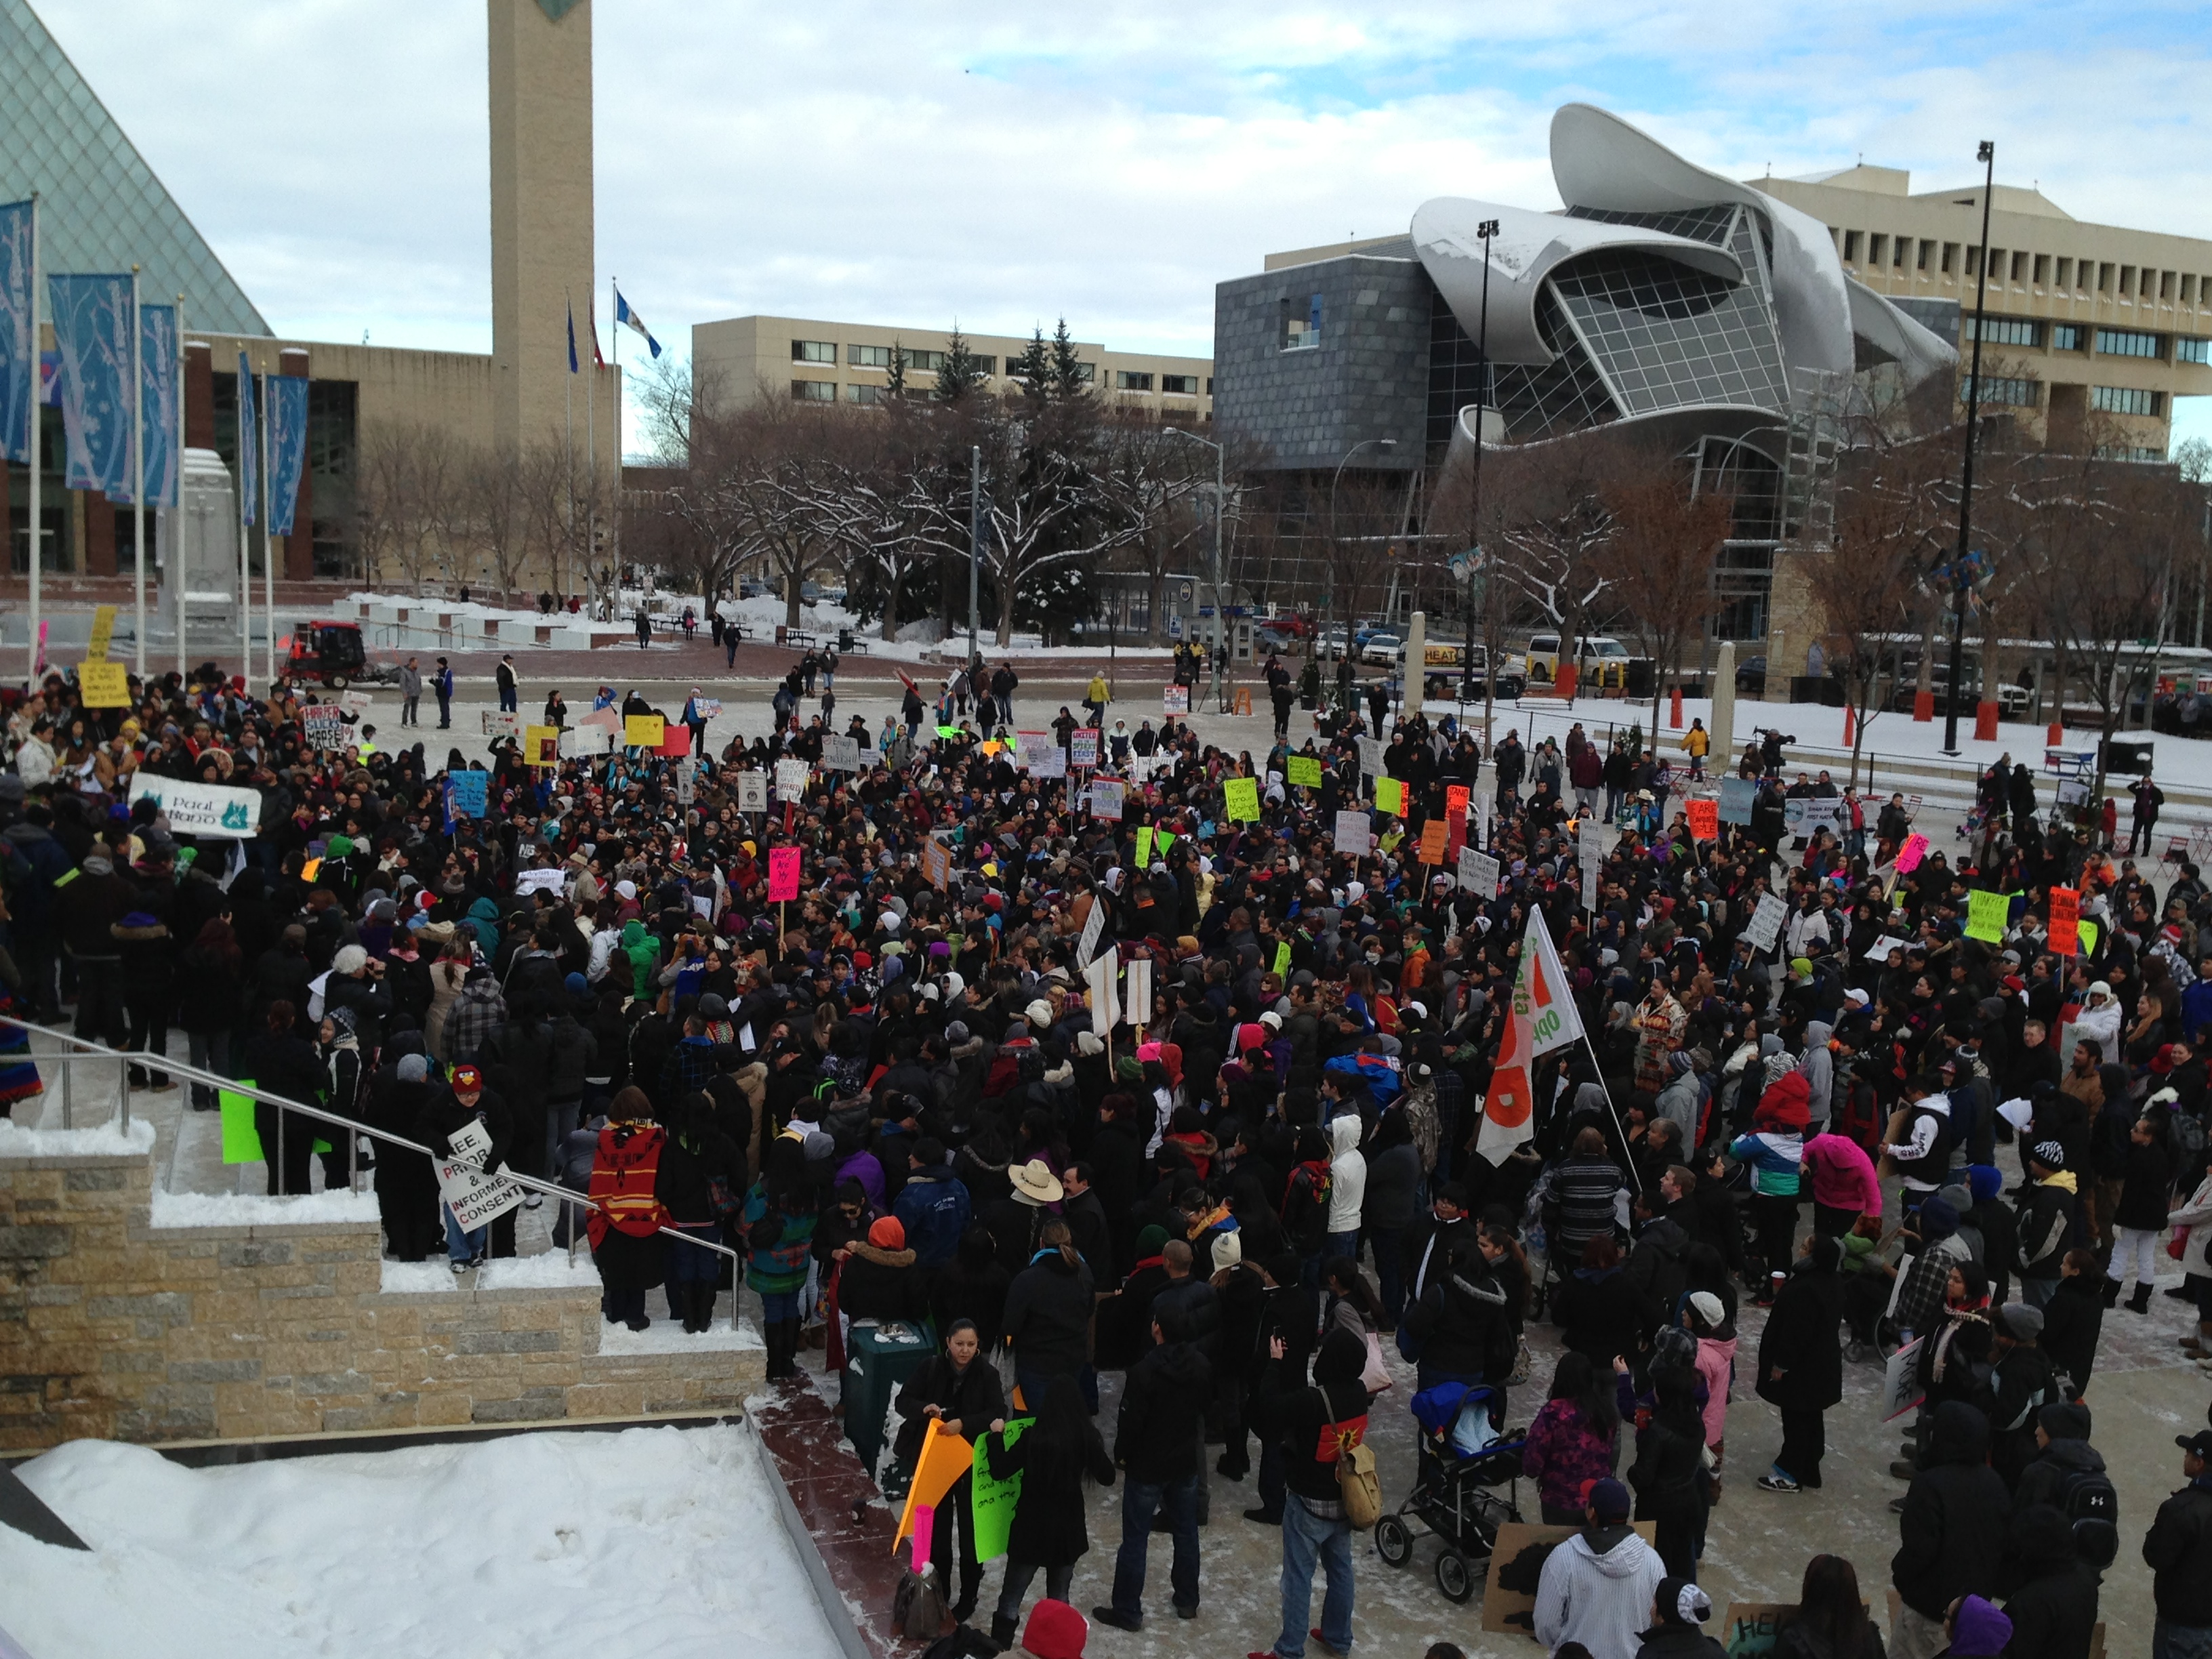 Edmonton protest, via Rabble.ca